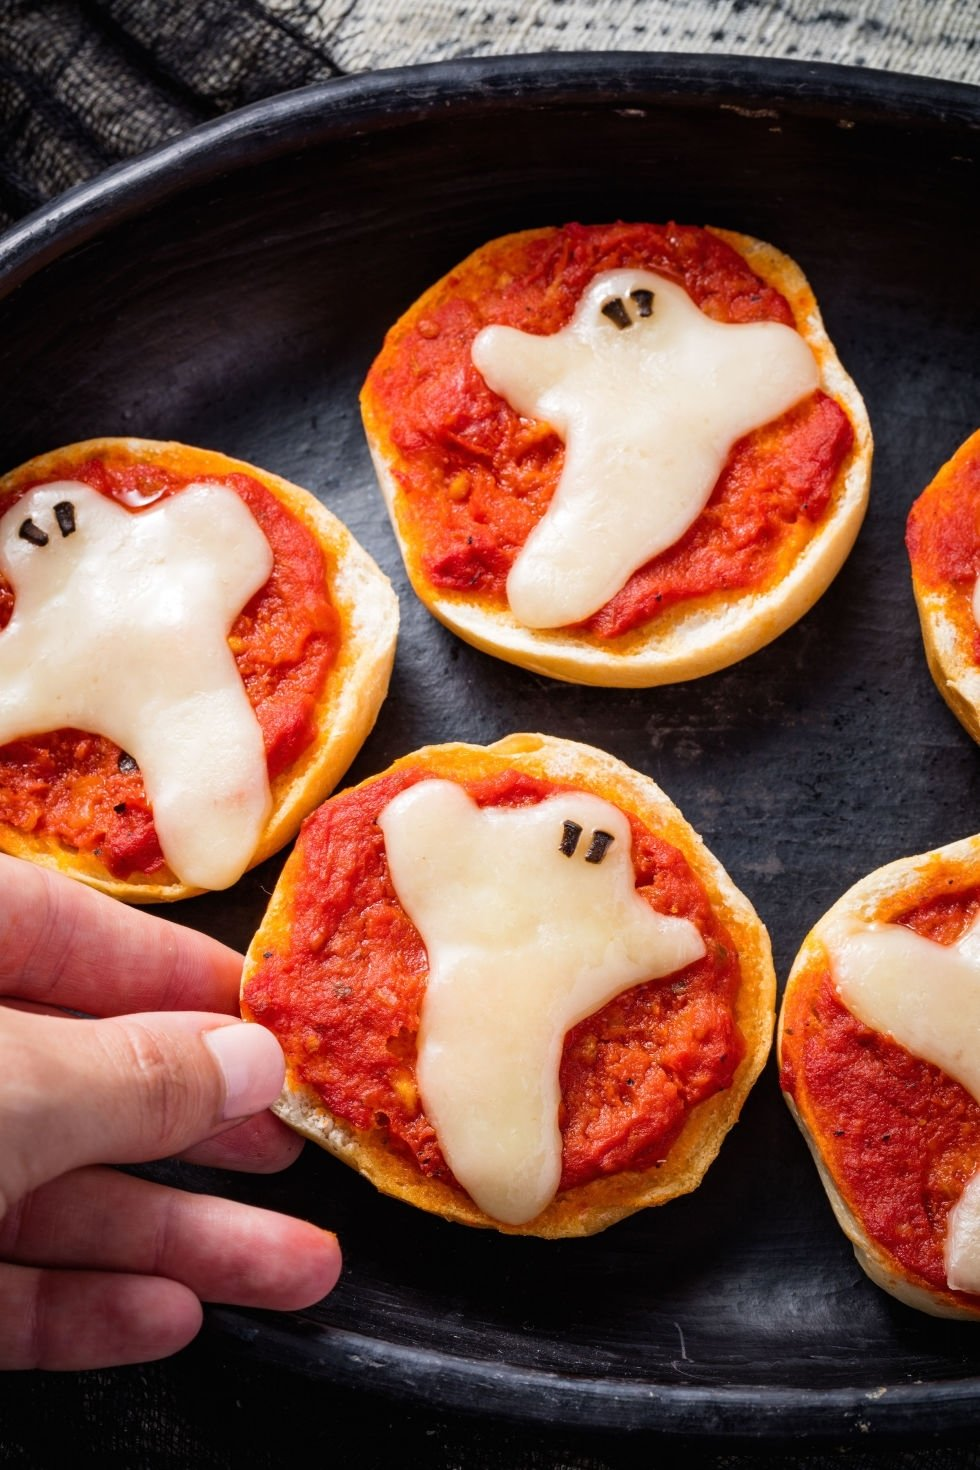 10 Awesome Halloween Party Food Ideas For Kids halloween food ideas for kids mforum 4